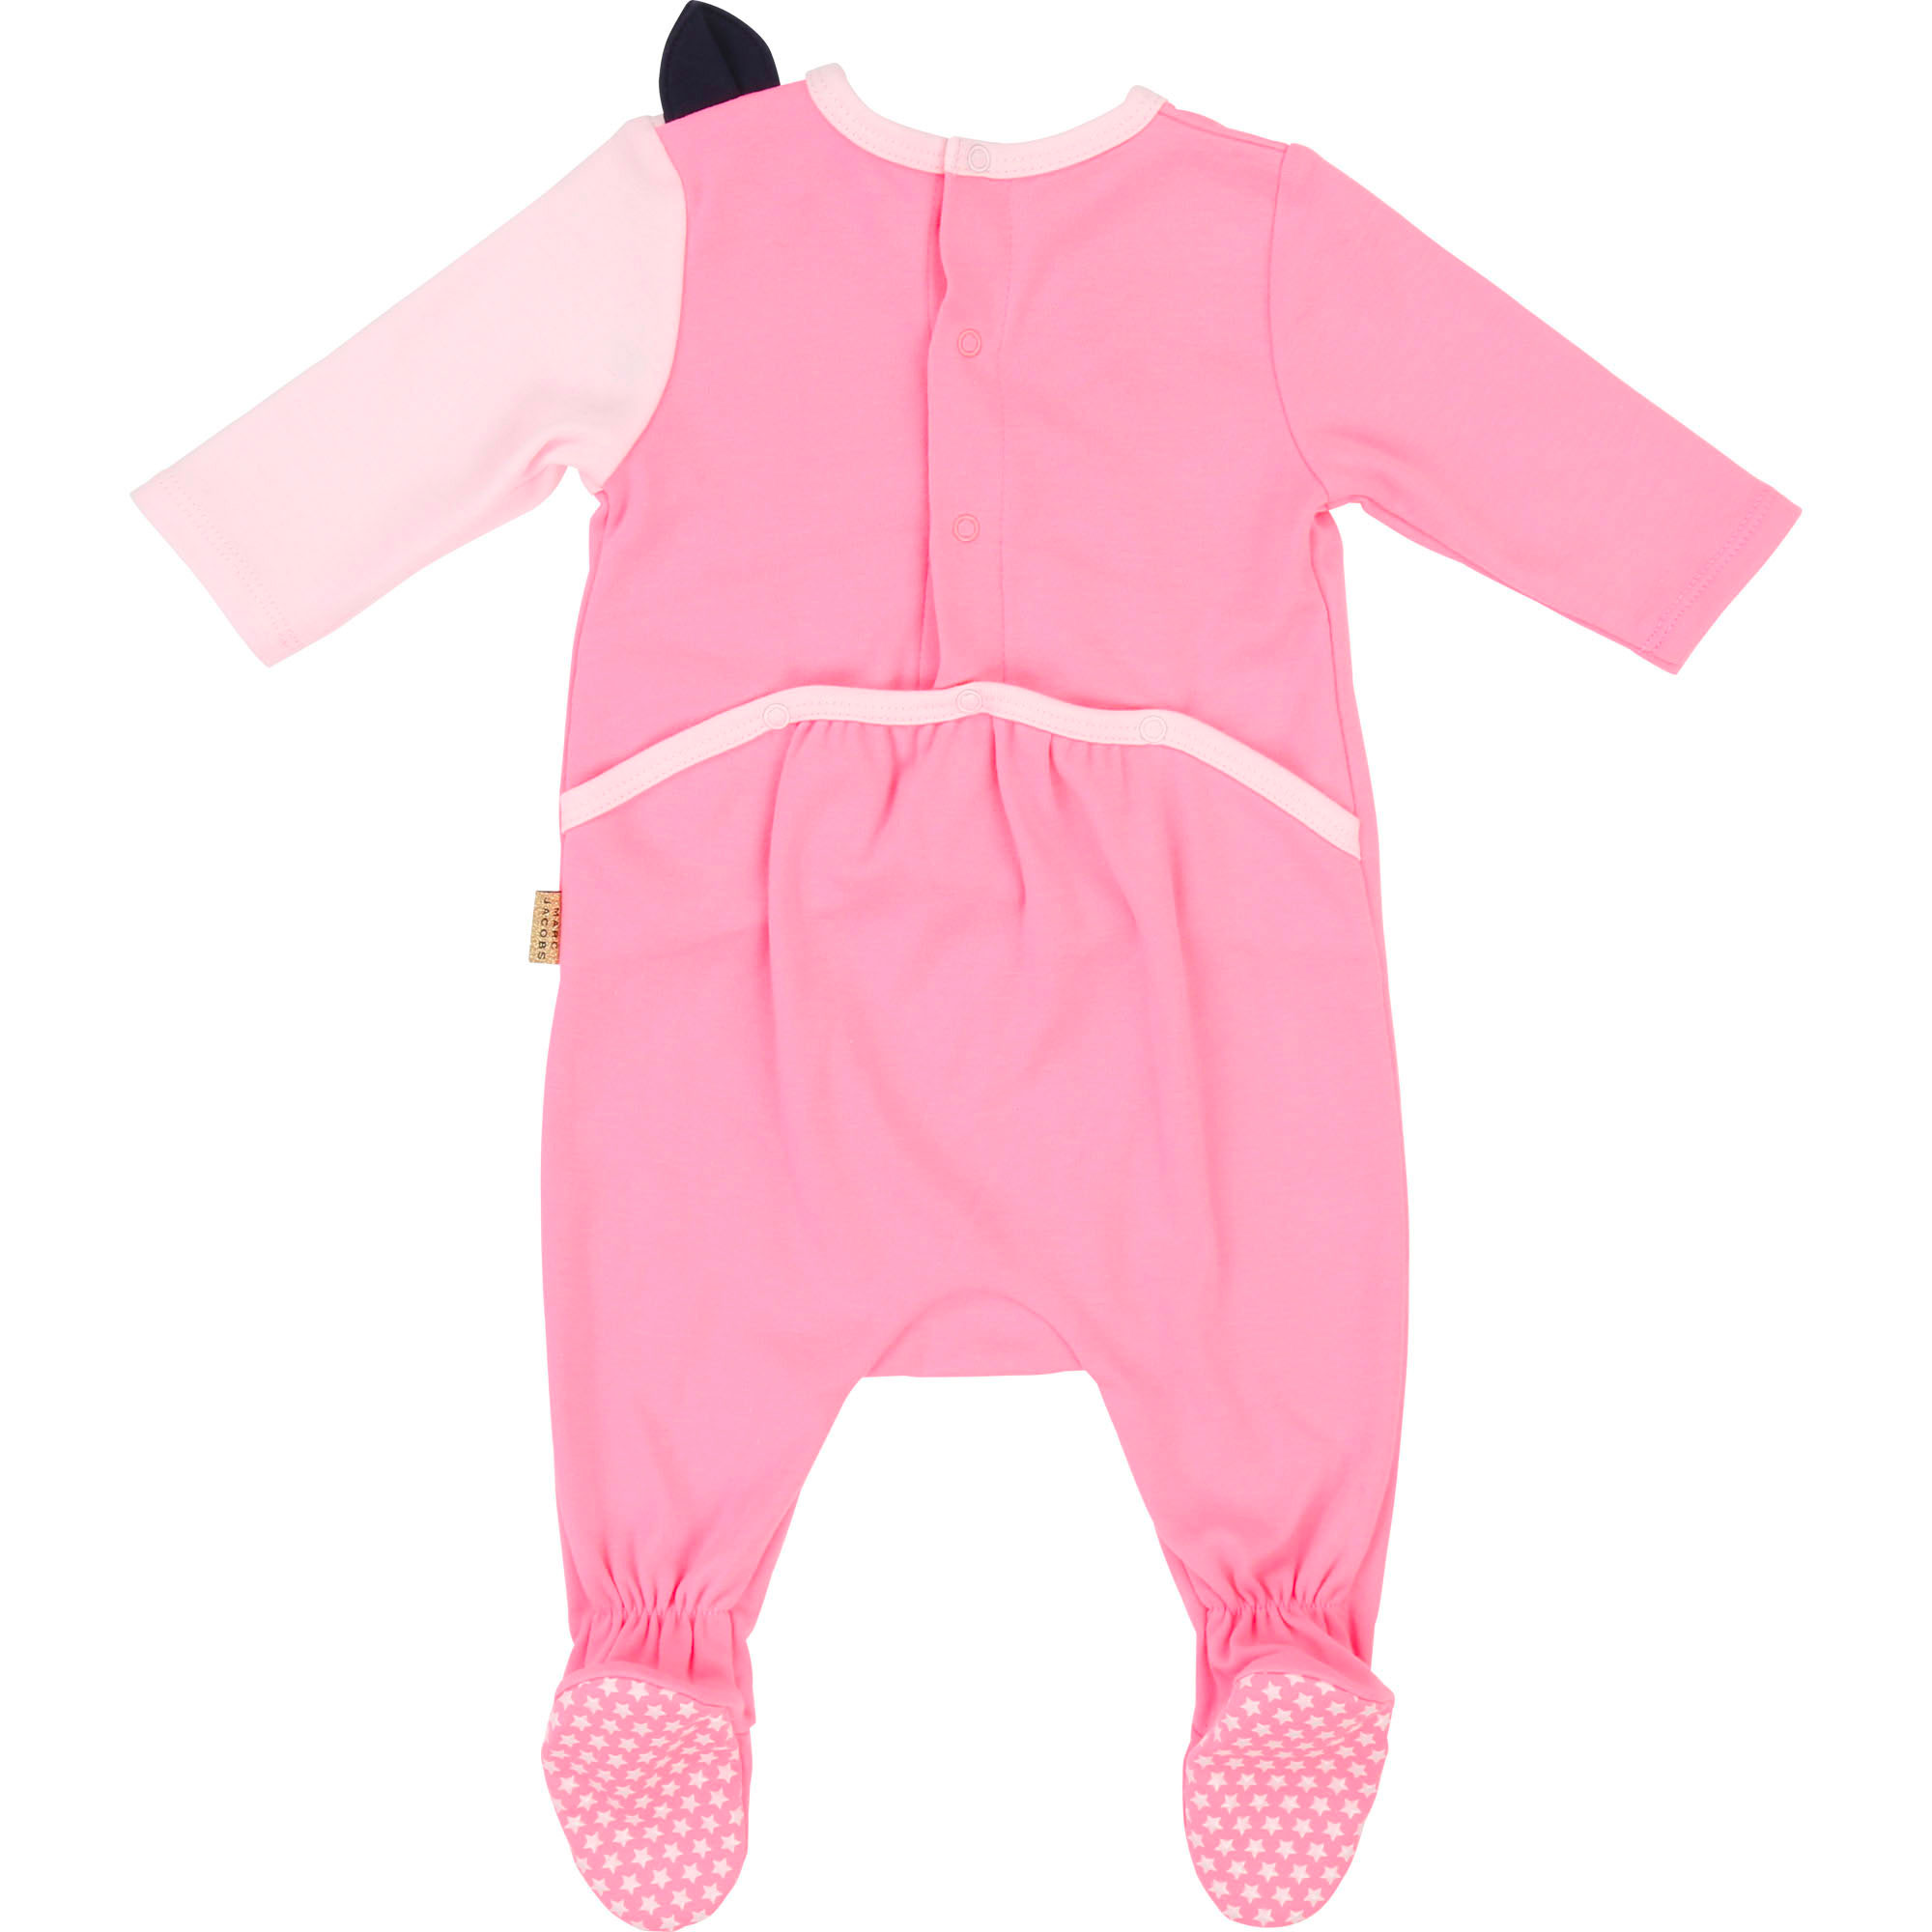 Interlock pyjamas and bib THE MARC JACOBS for UNISEX